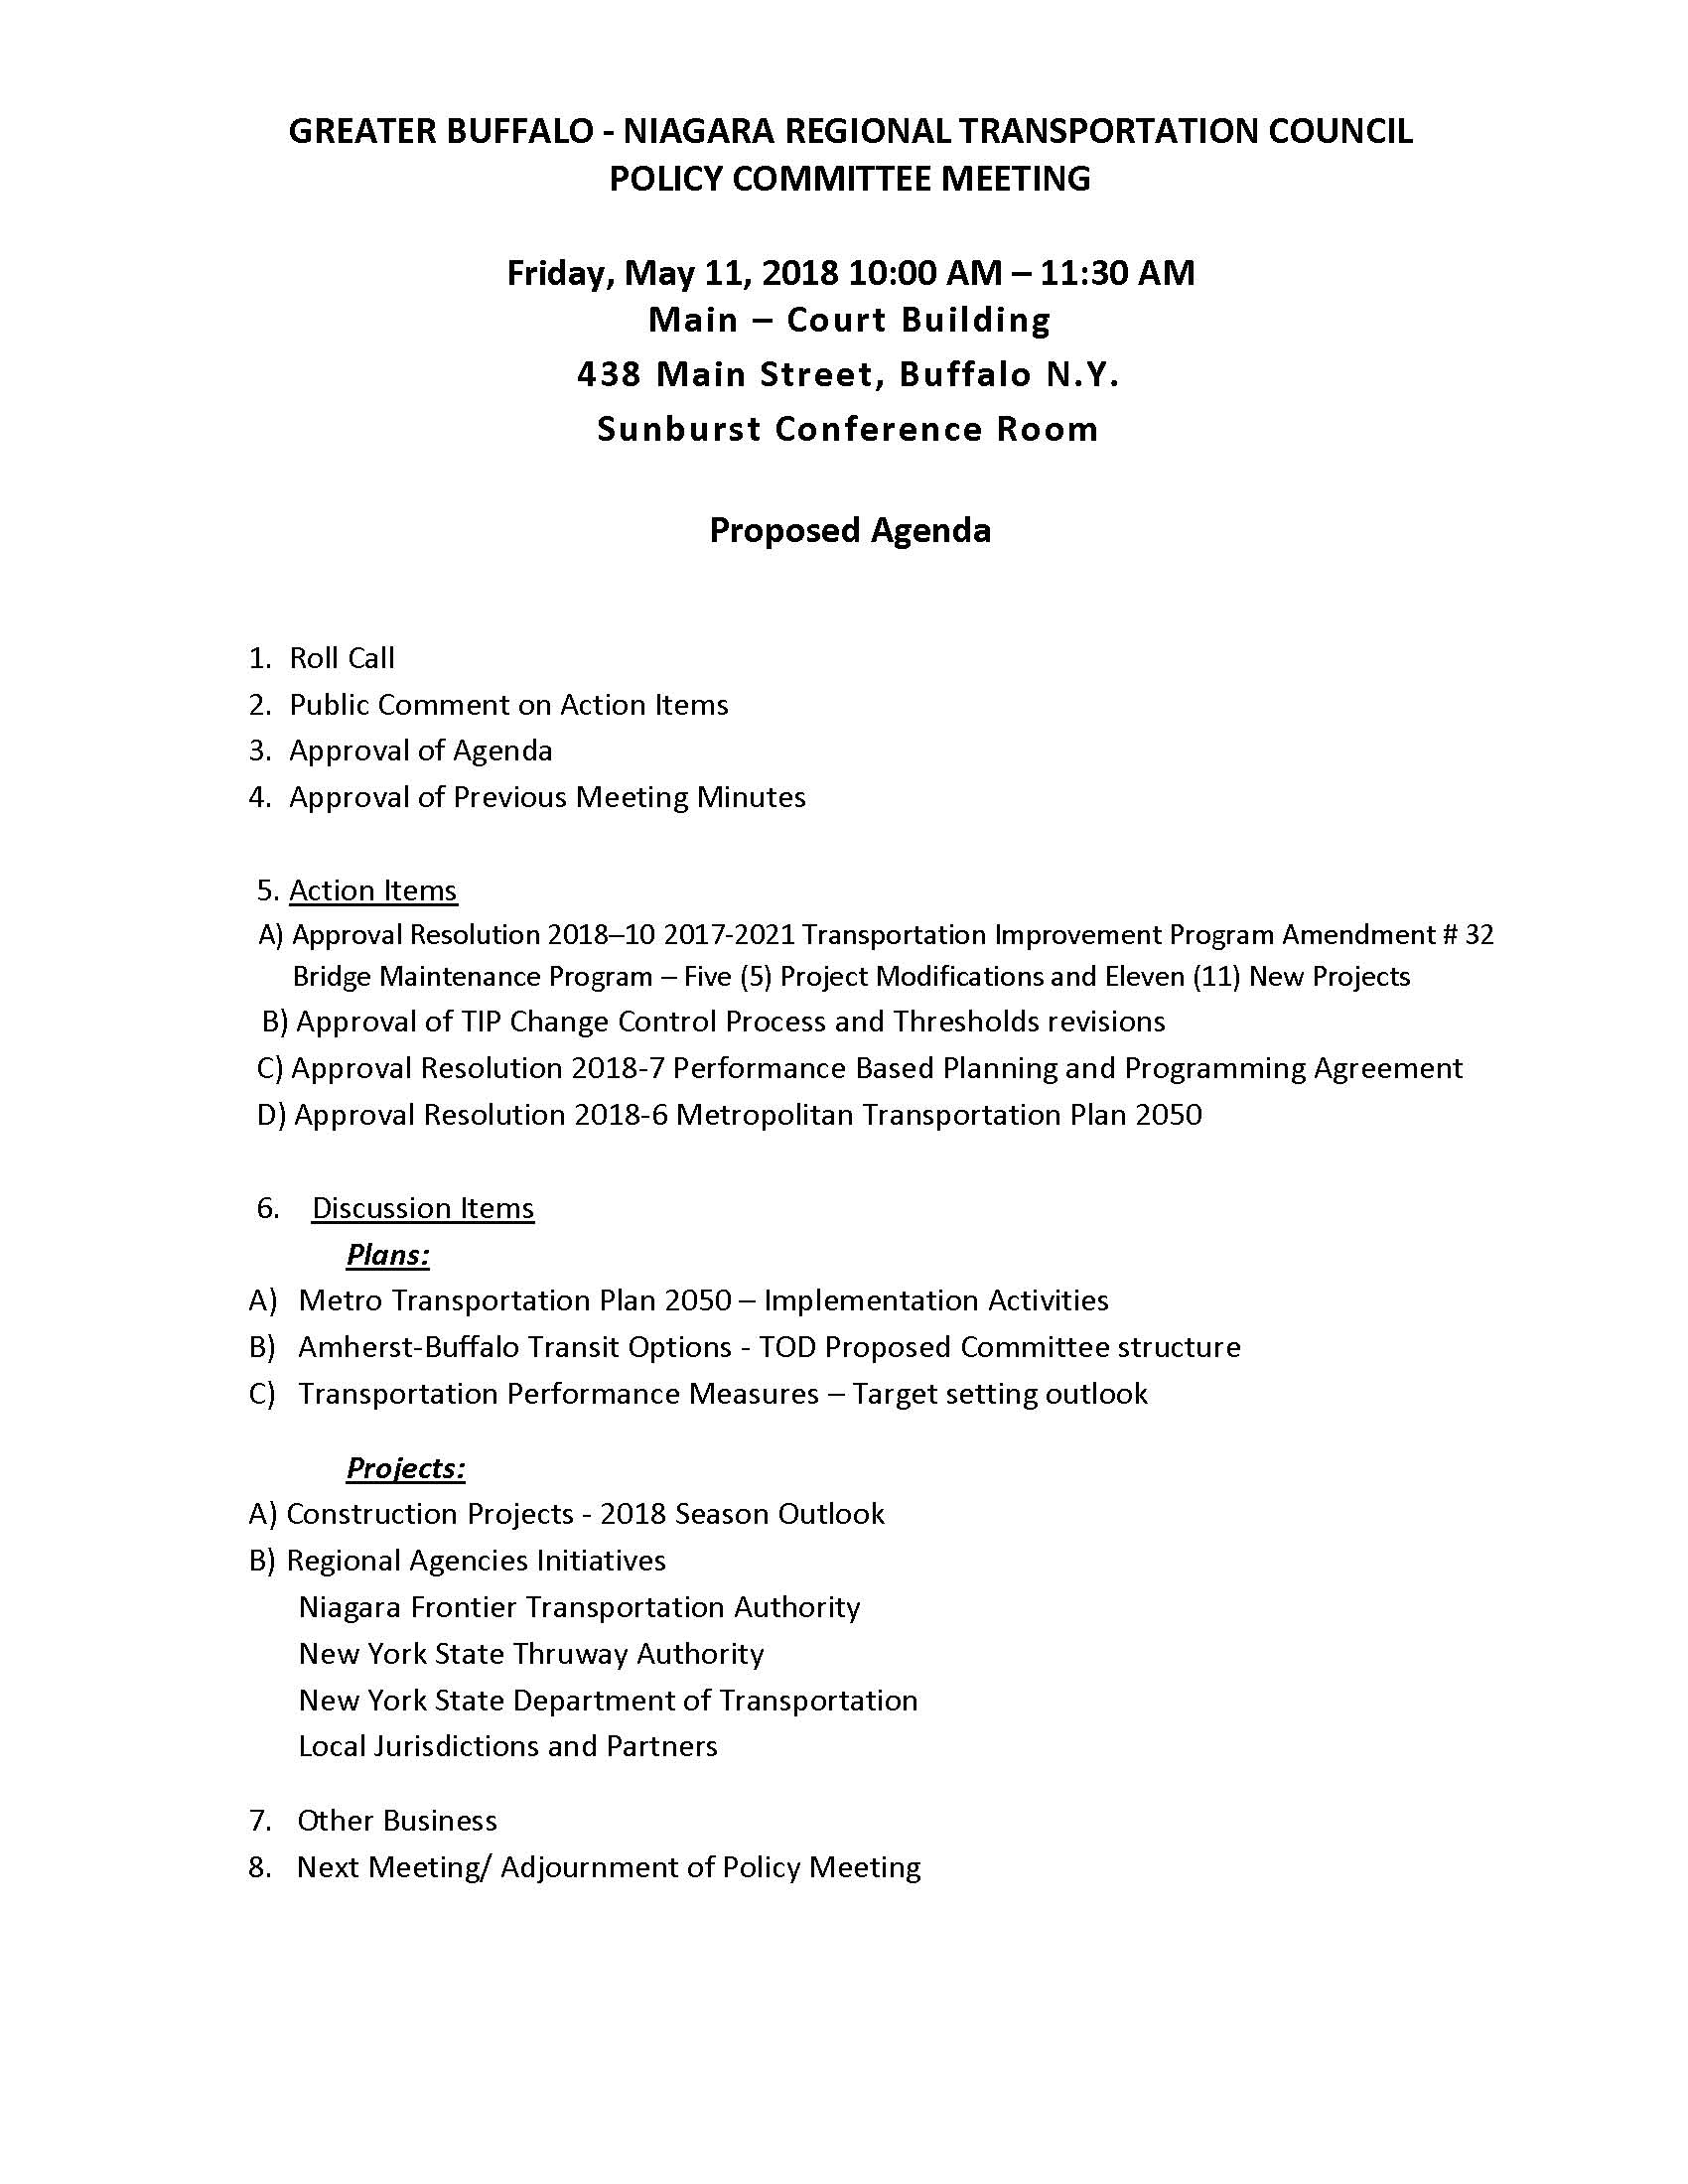 Policy Committee Draft Agenda - May 11, 2018